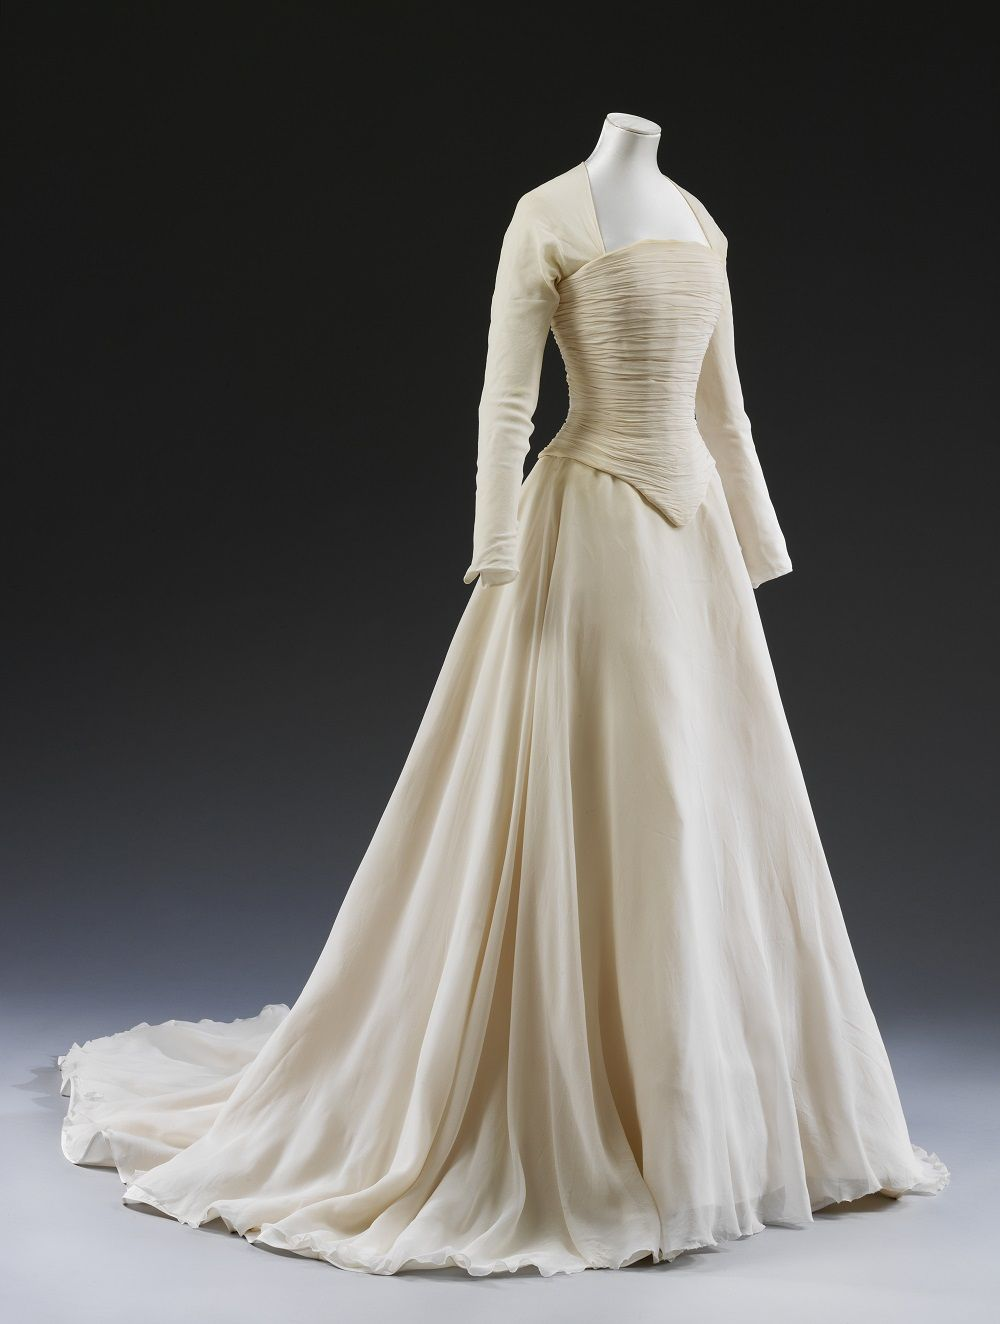 Lady Sarah Chatto\'s exquisite ivory wedding dress by Jasper Conran ...